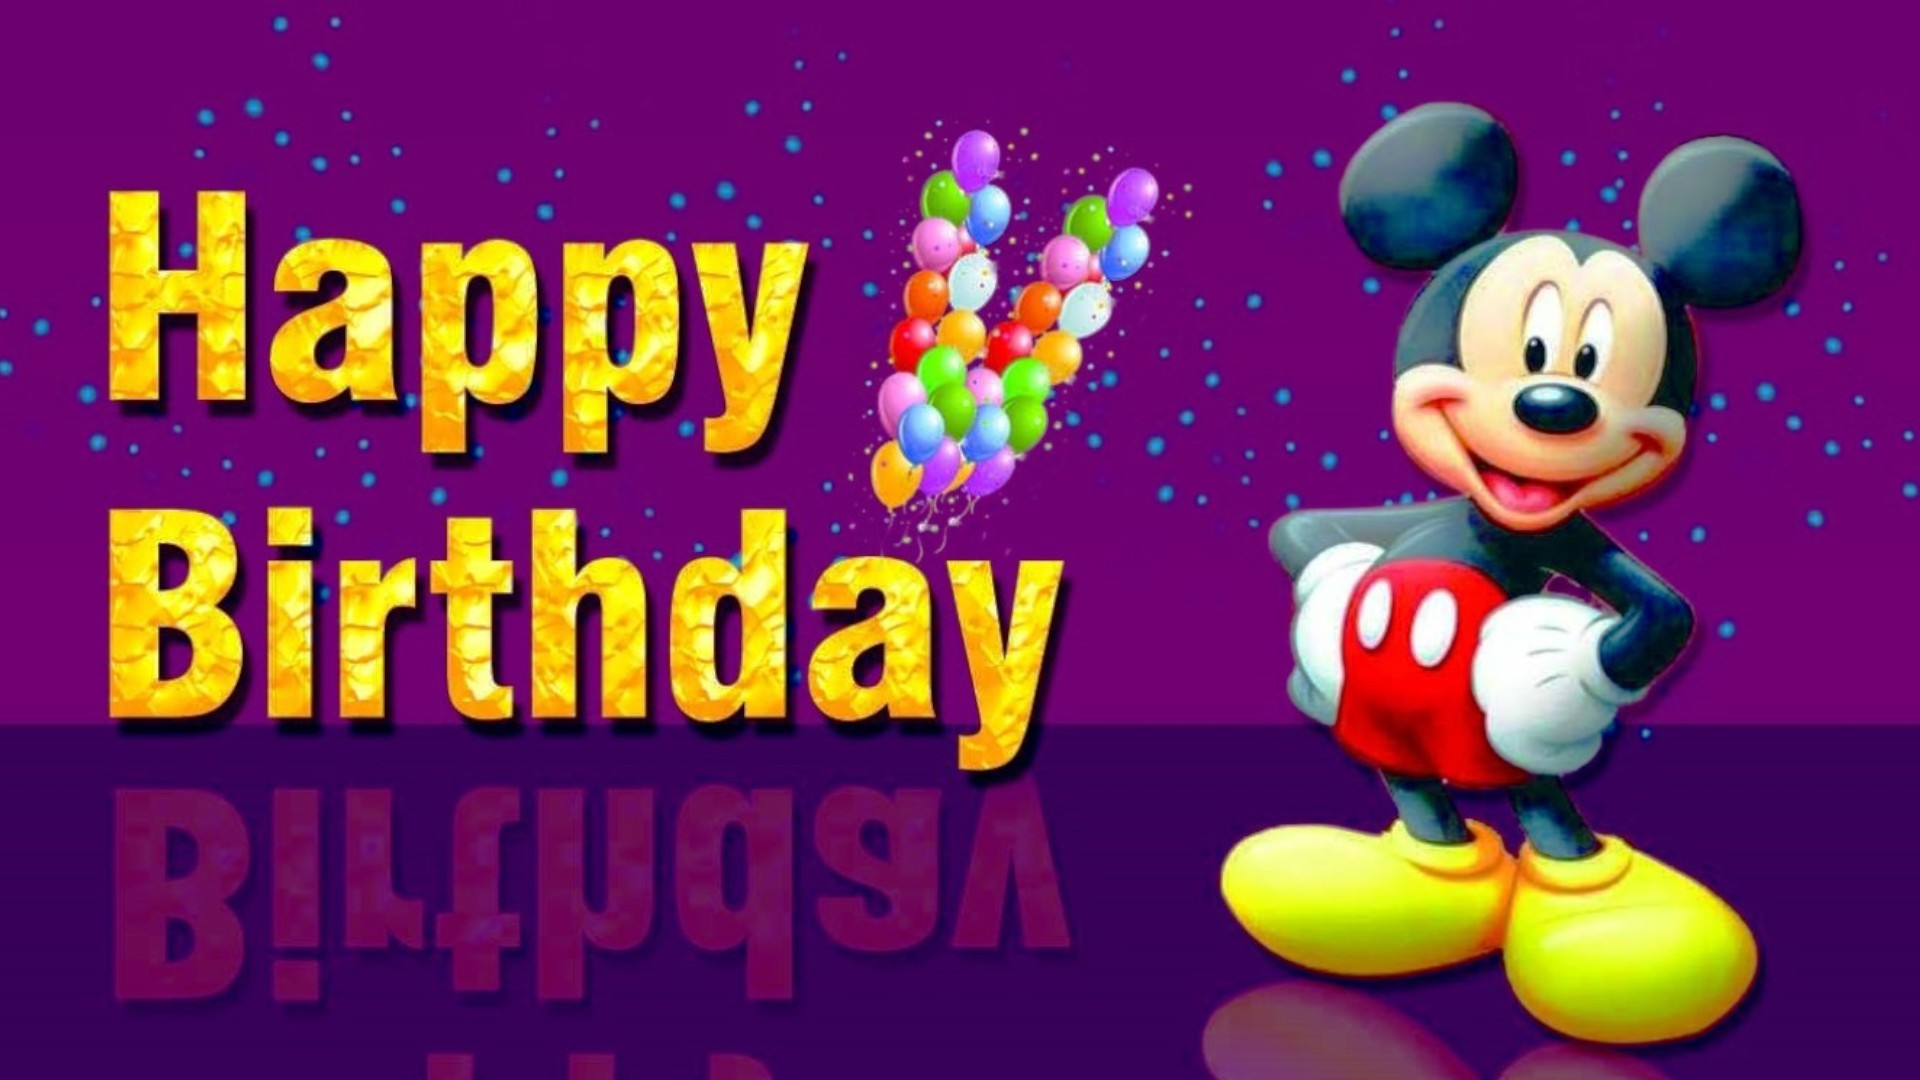 b day wallpaper download ; a0bbc4fa81ef3ed2d690e822f9317458